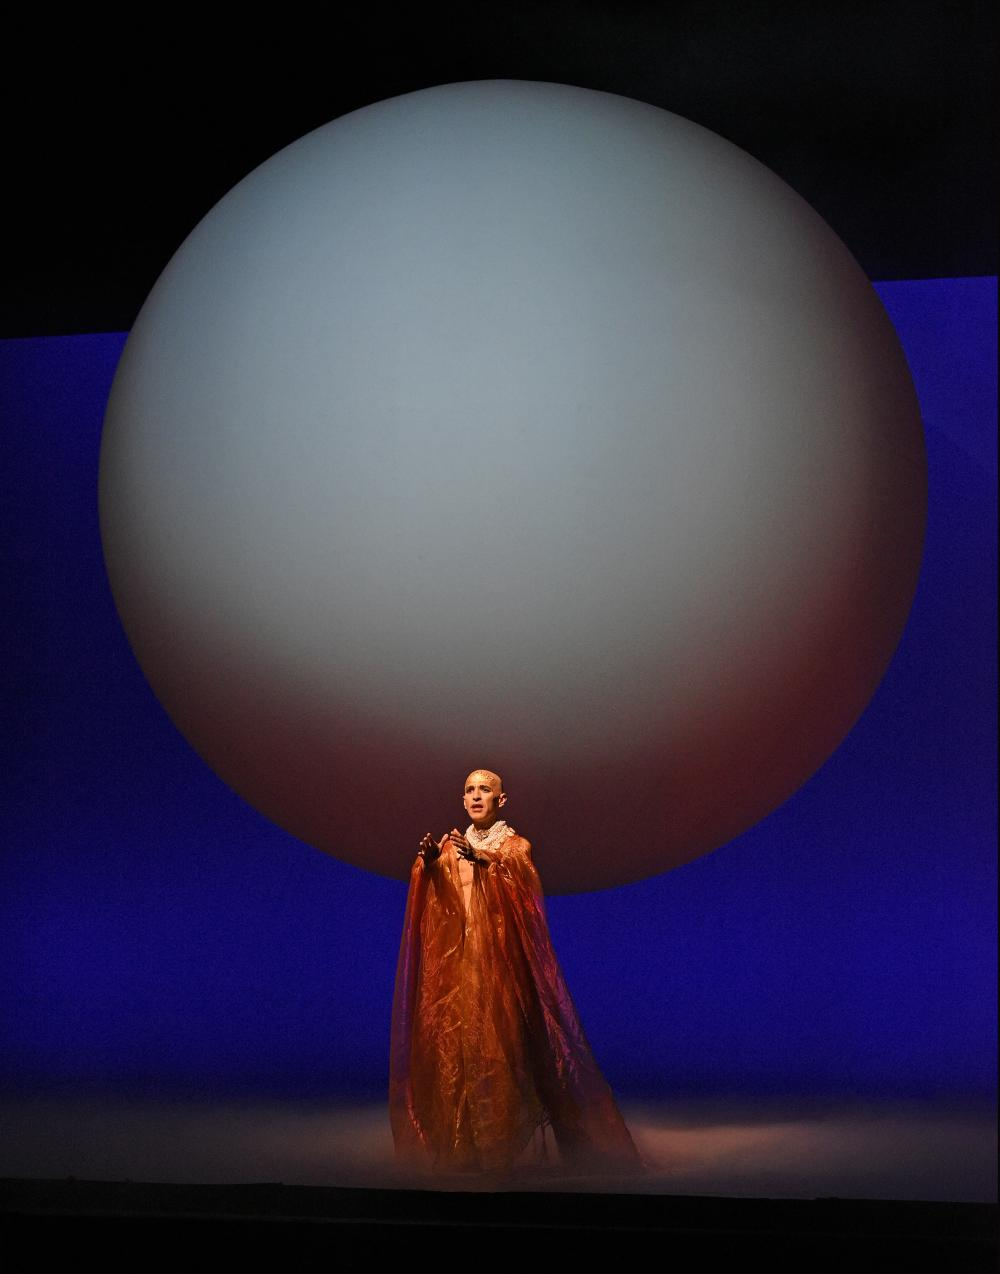 Person in red performing infront of a globular structure